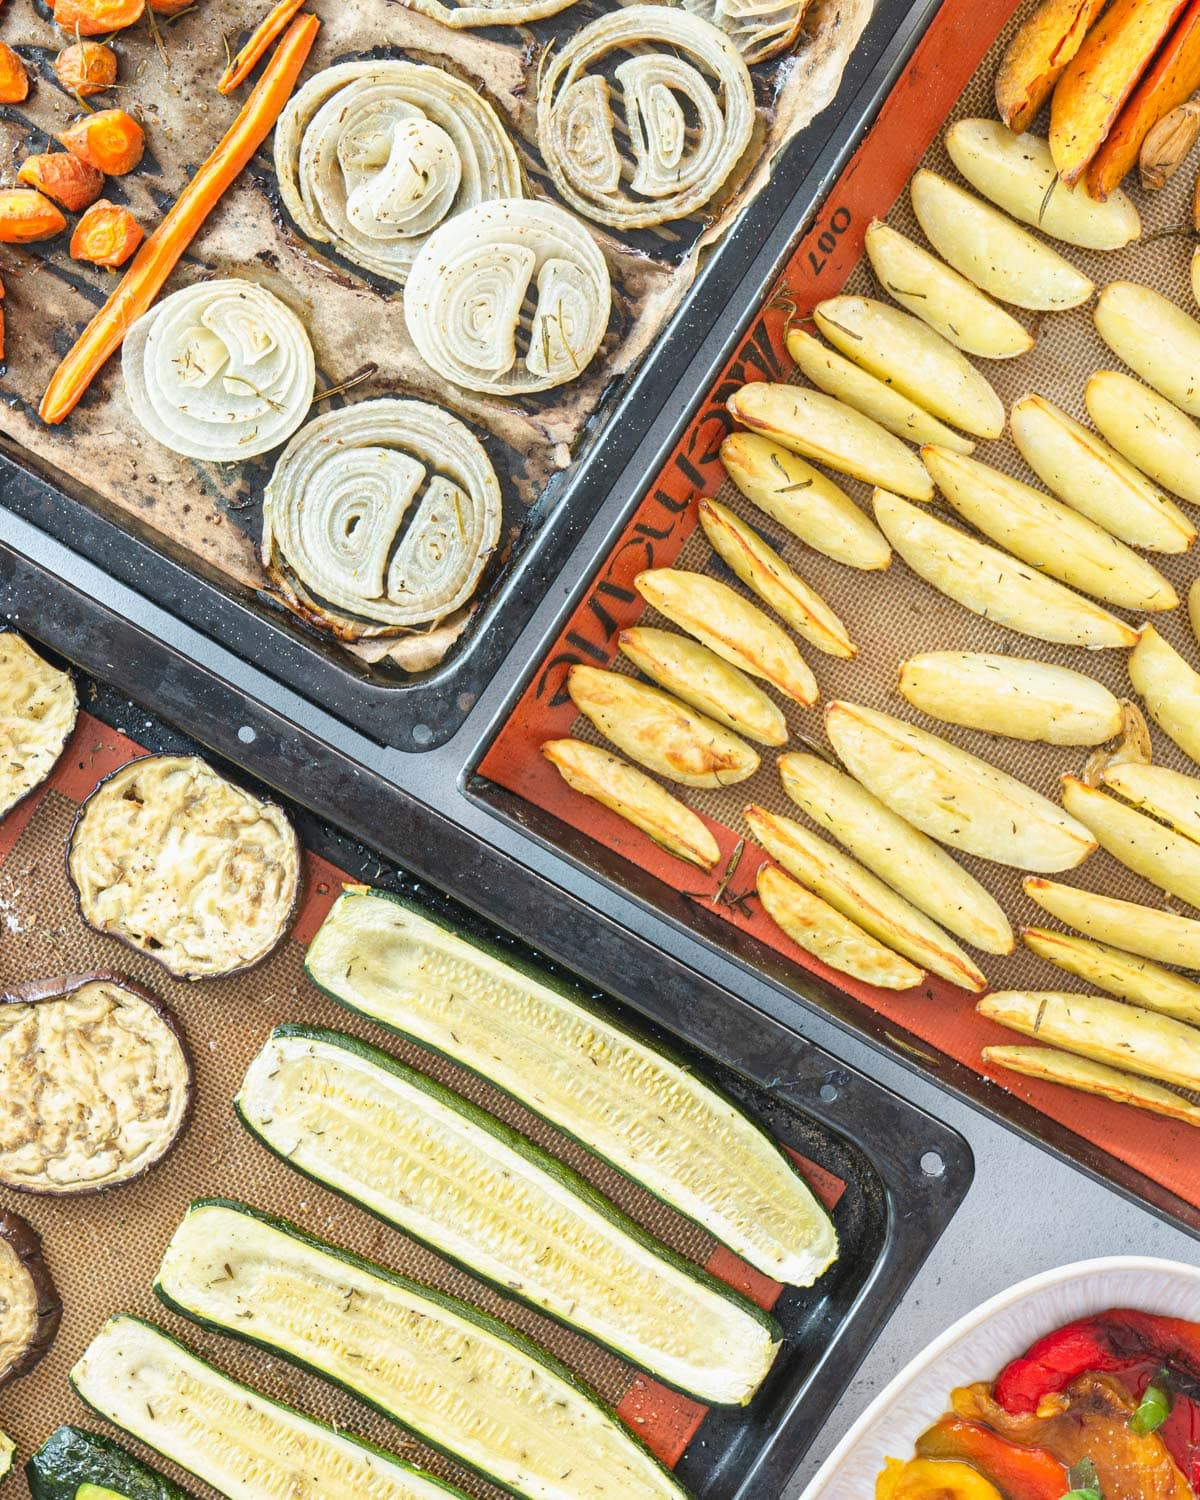 Italian style roasted vegetables with olive oil and rosemary